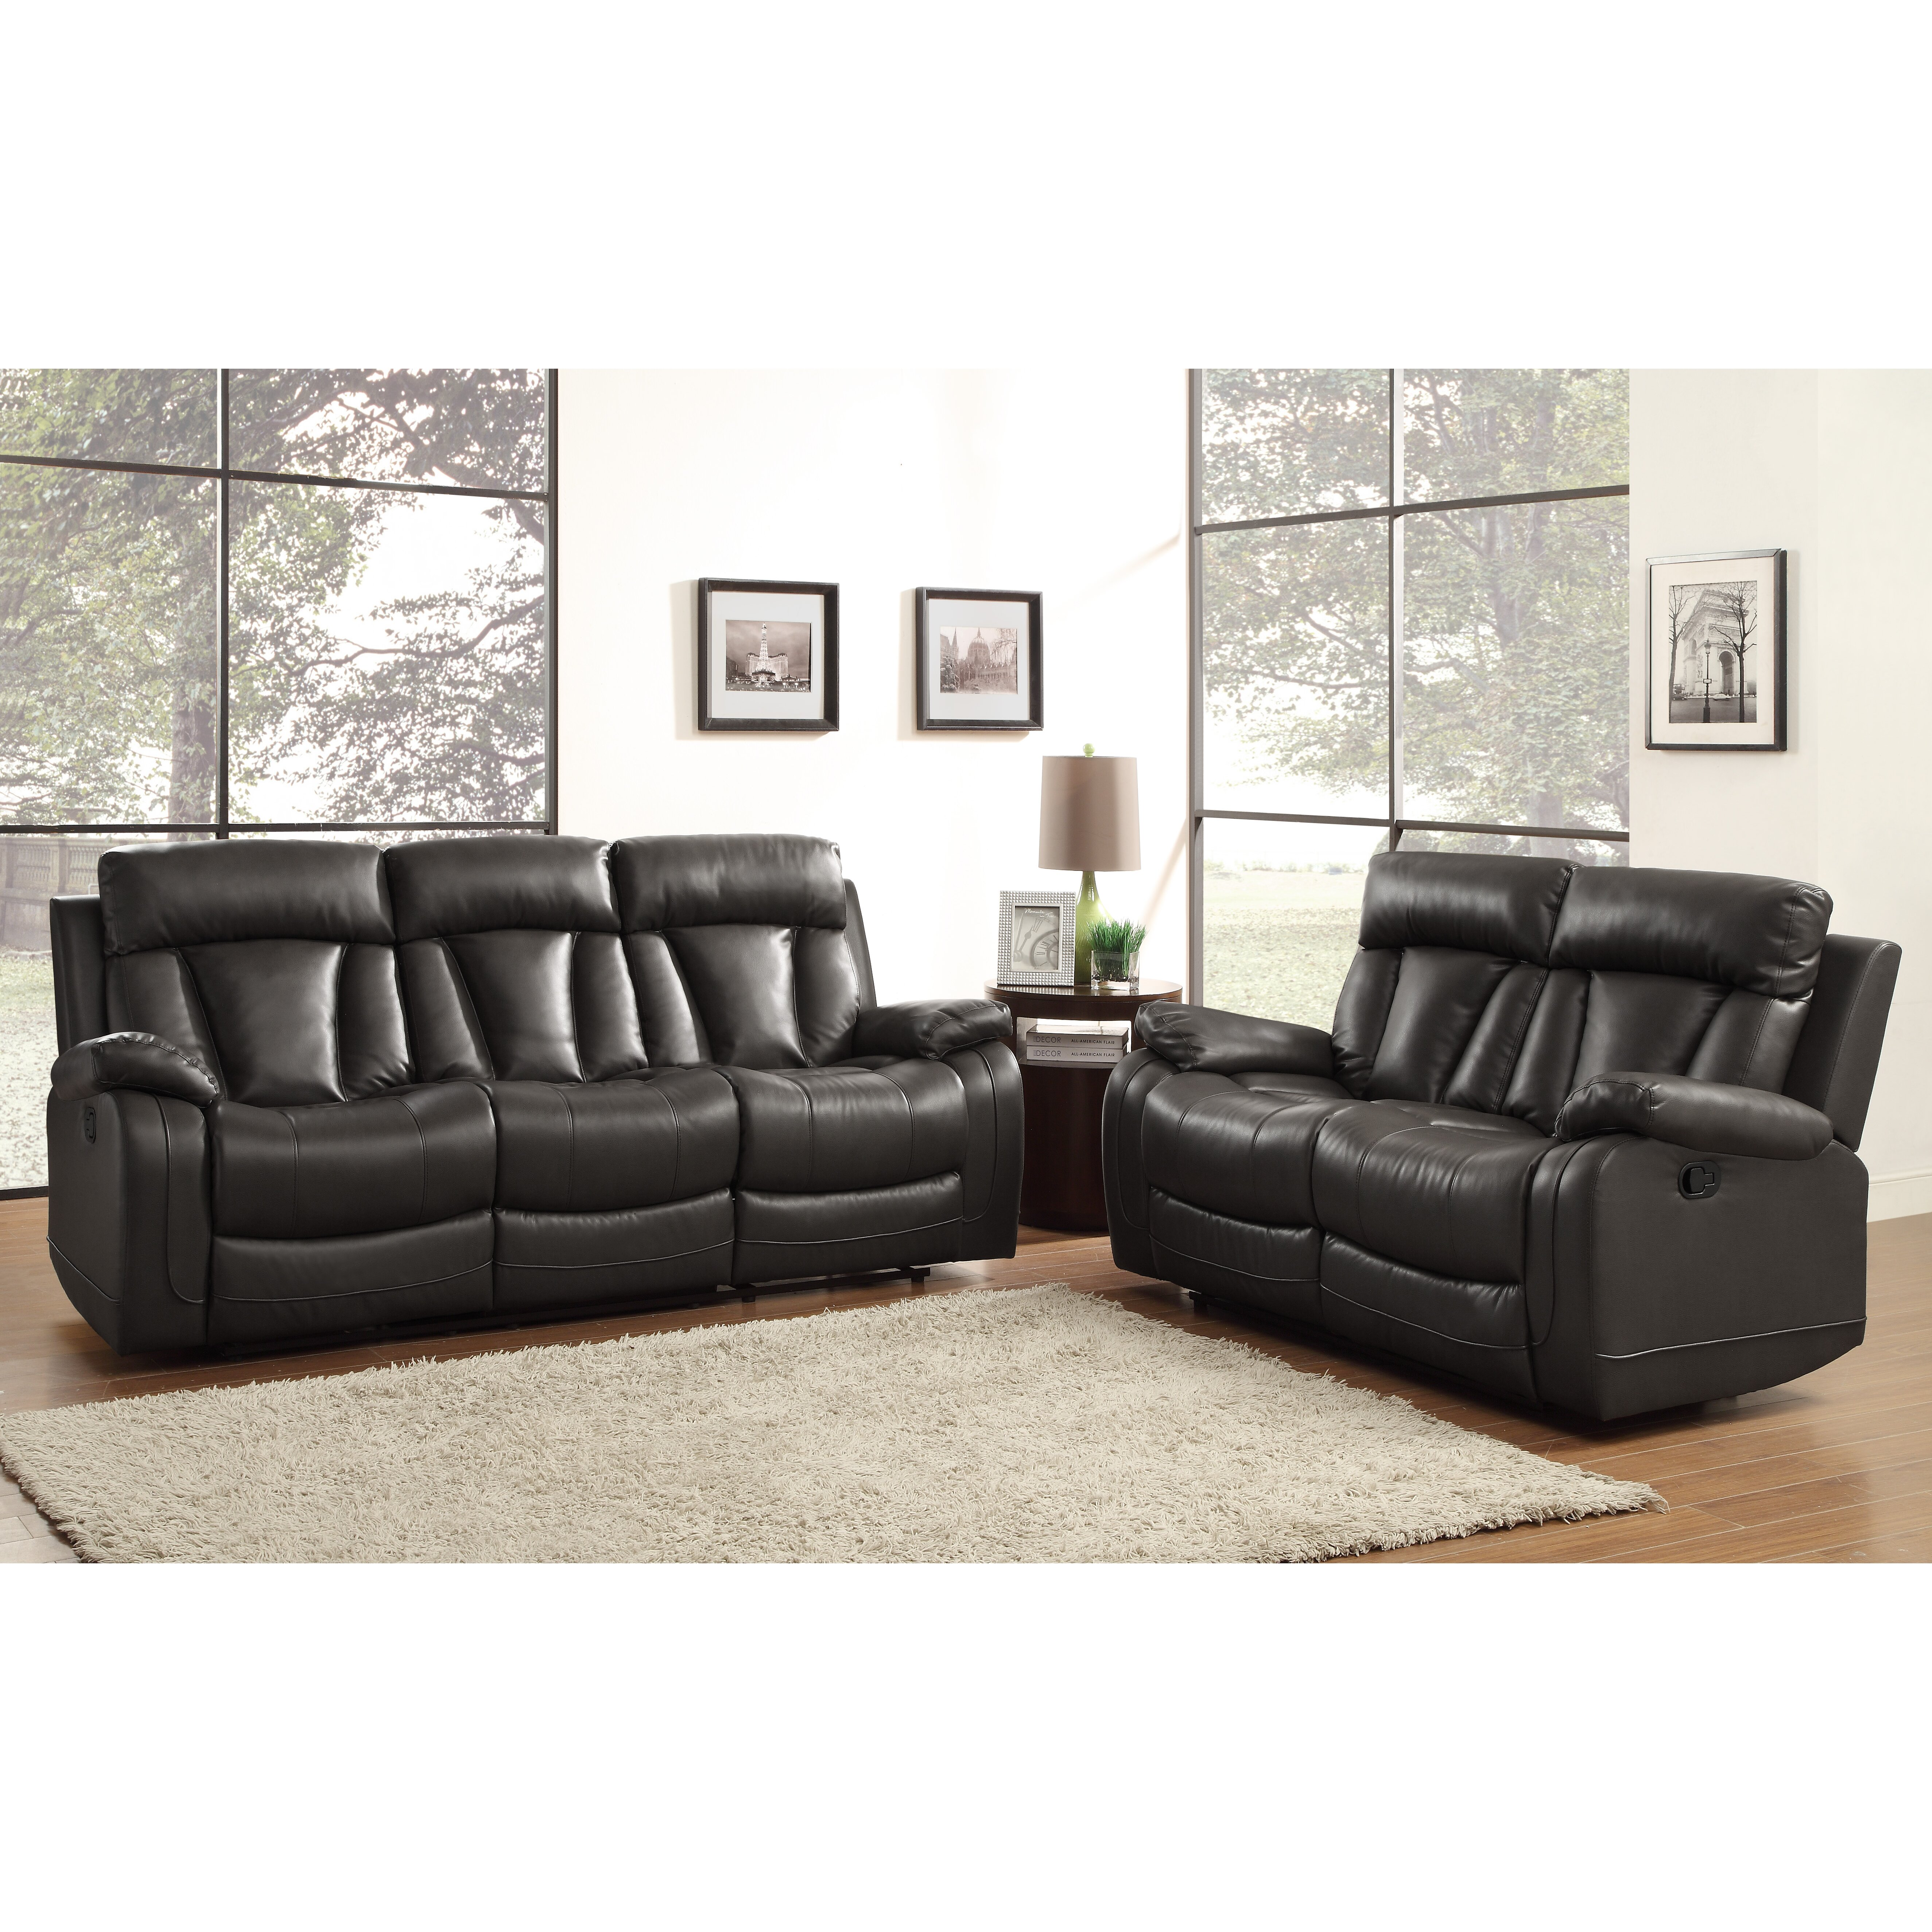 Woodbridge Home Designs Furniture Review Woodhaven Hill Ackerman Double Reclining Loveseat